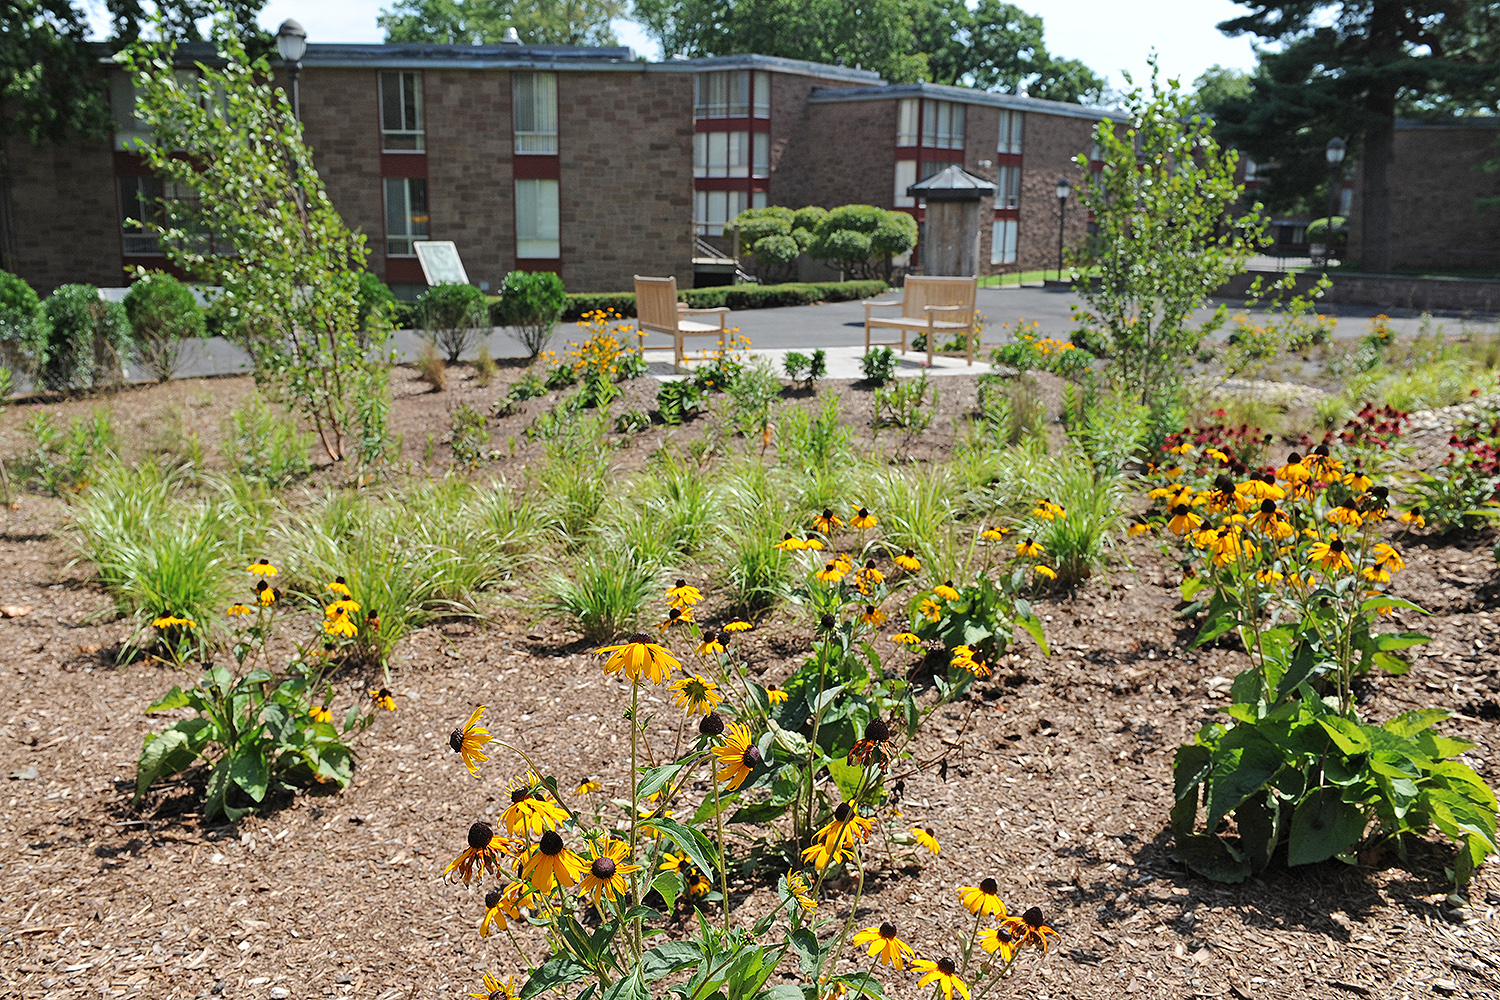 The Butterfield Colleges Residence Hall received a new garden this summer including native grasses, shrubs and yellow and purple cone flowers.